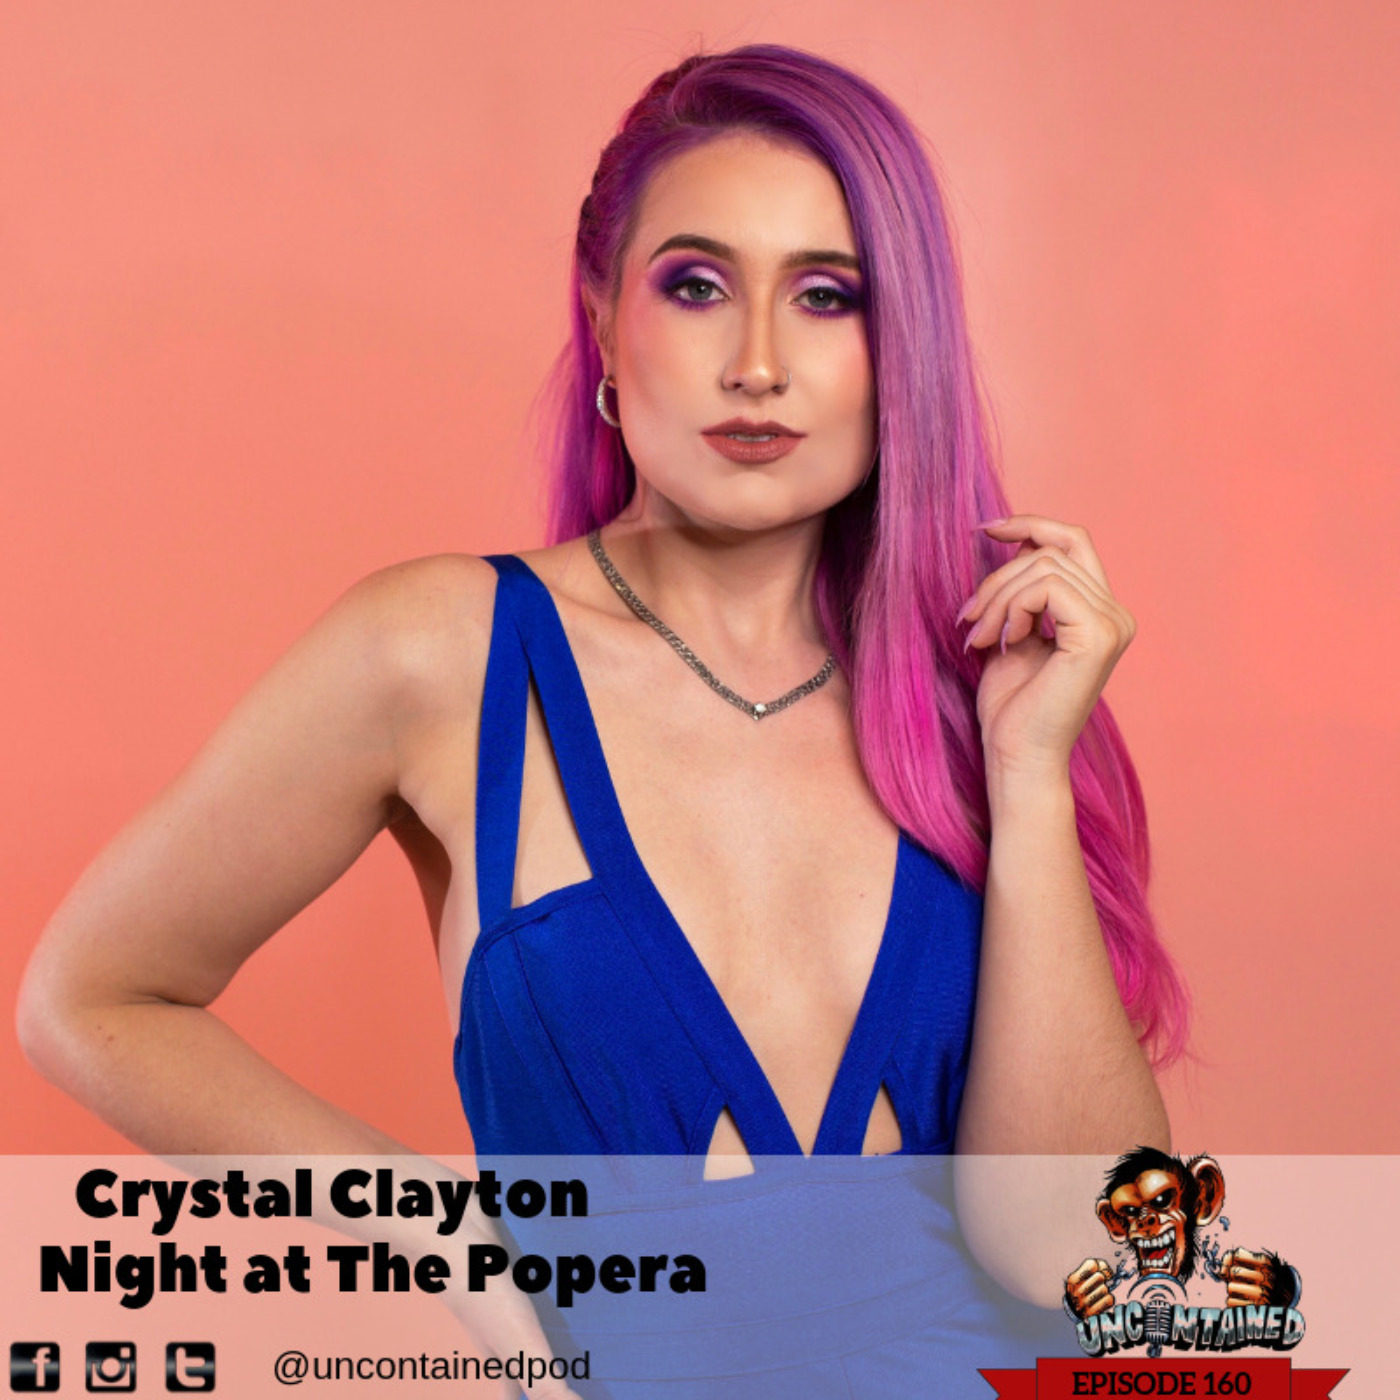 Episode 160: Crystal Clayton - Night at the Popera